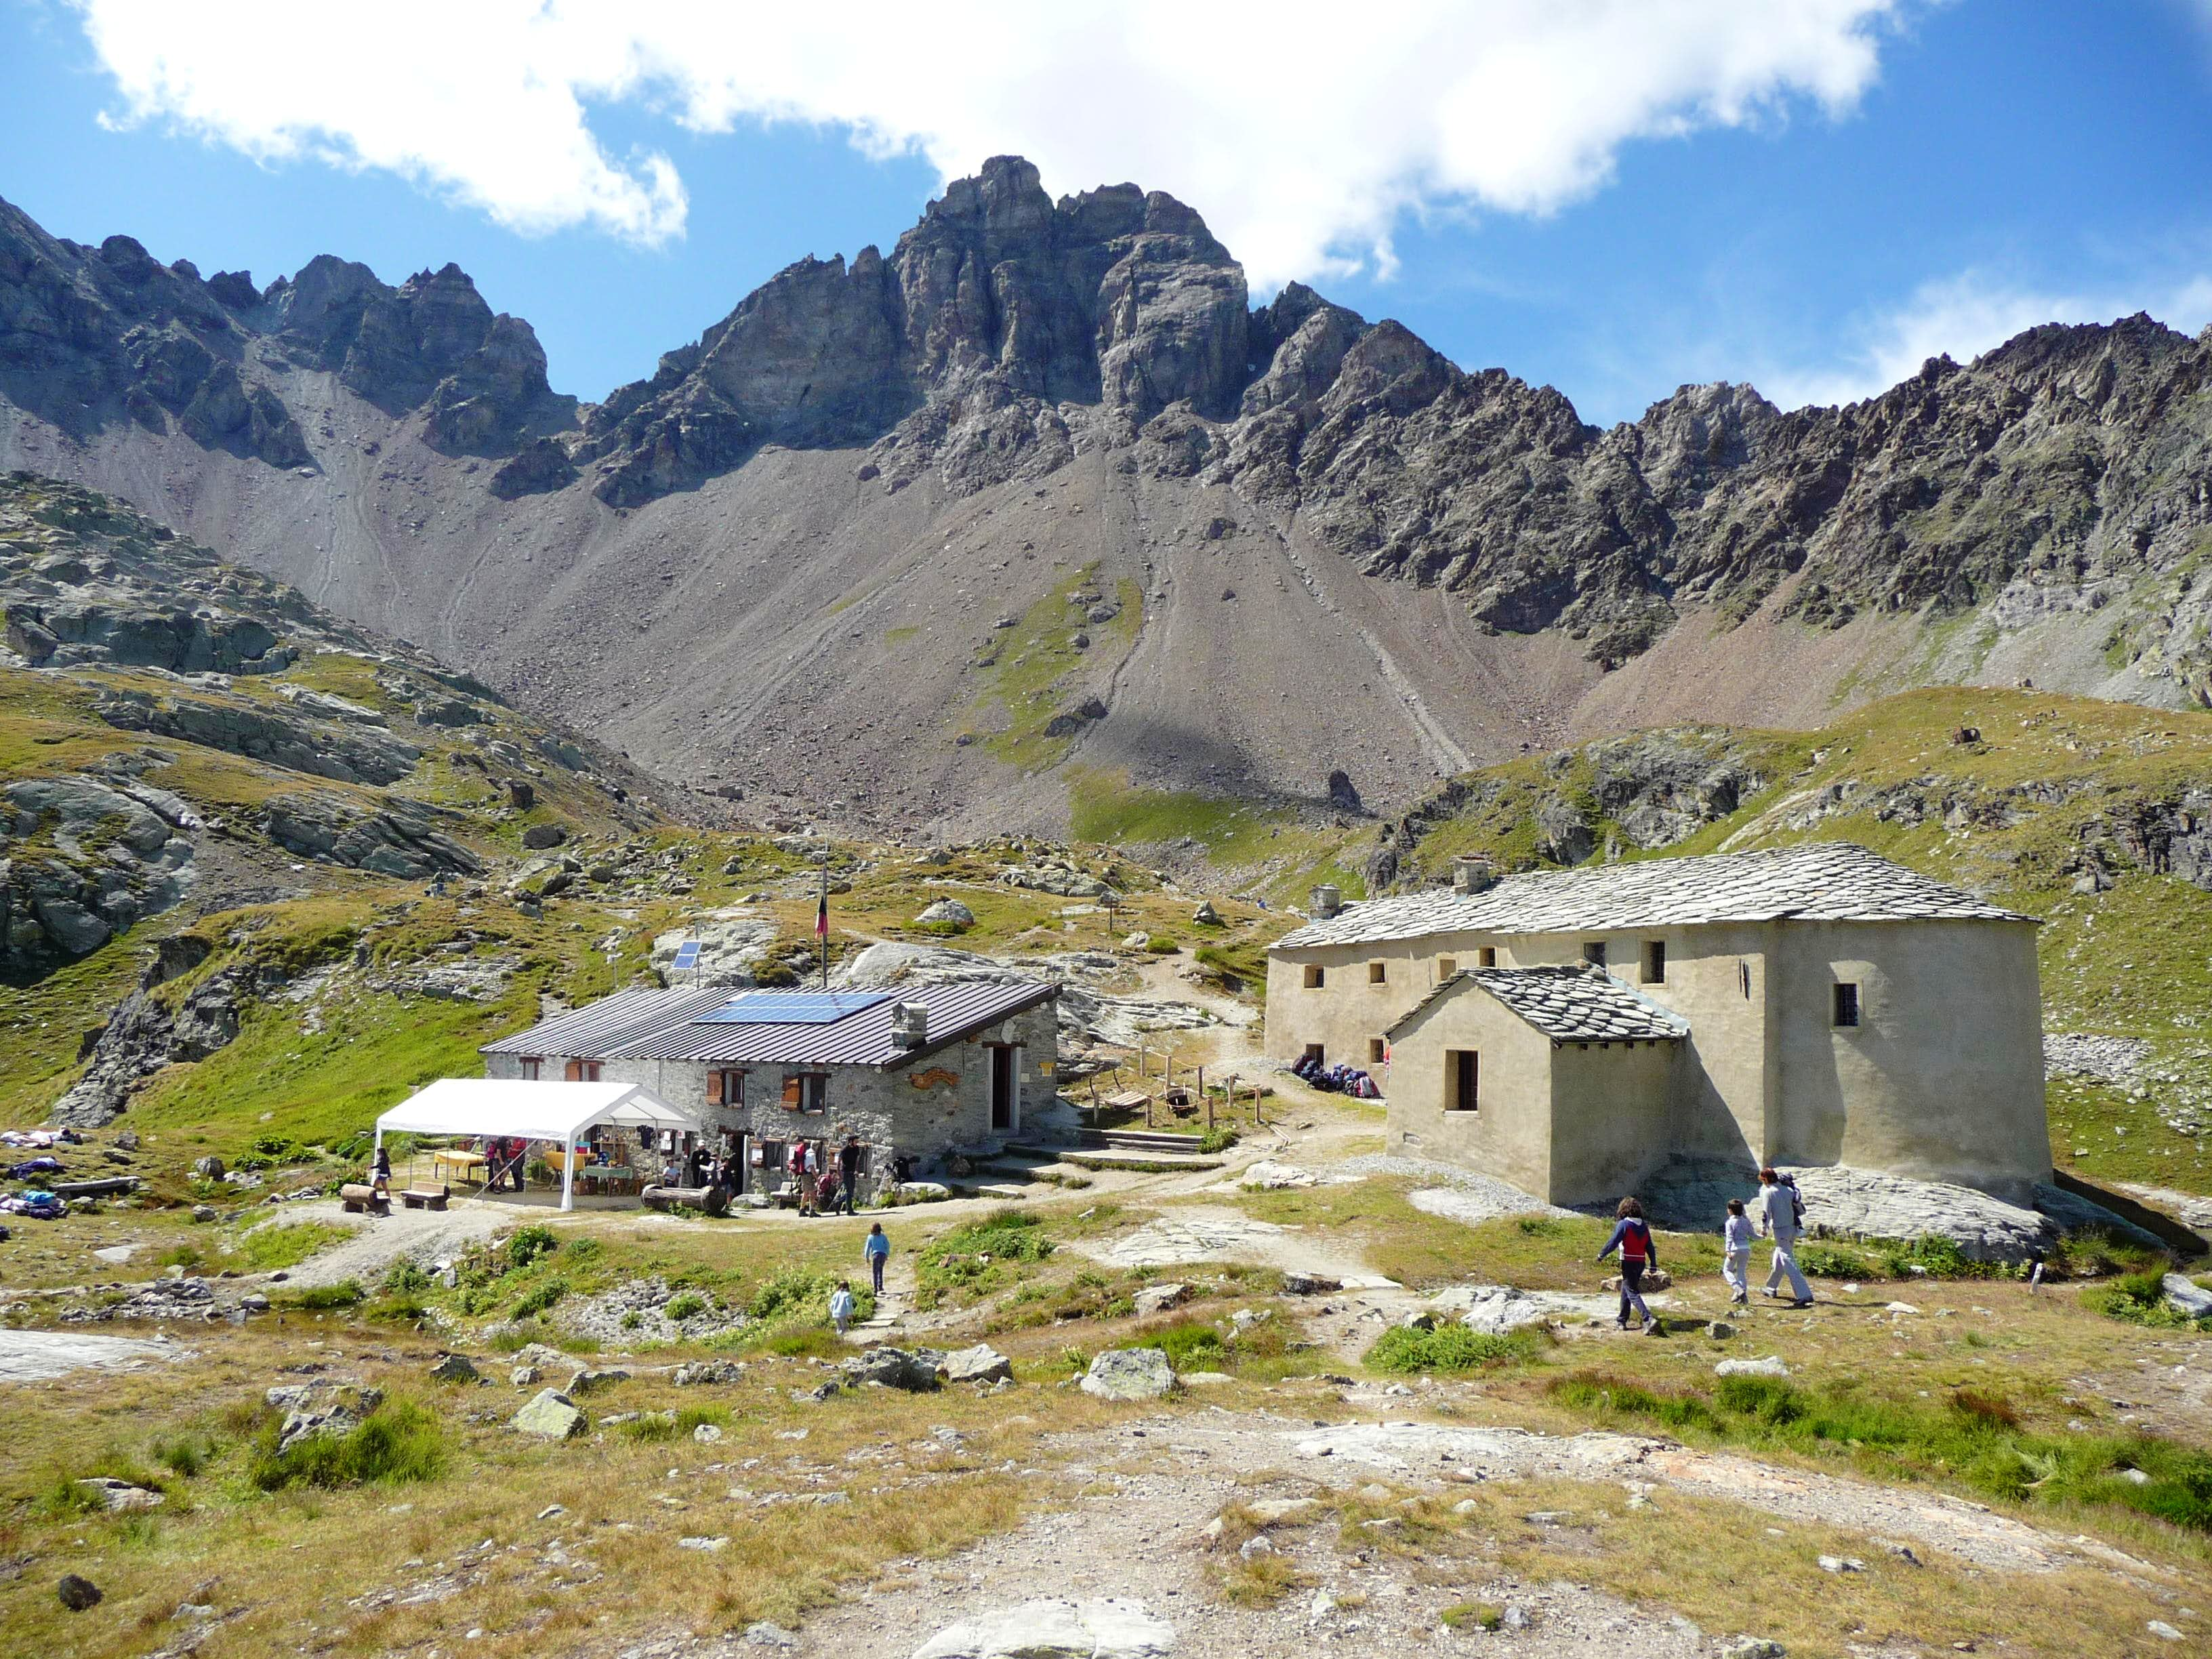 <font color=ff7000>⌂</font>Alpine REFUGES in the Aosta Valley &quot;Saint Barthélemy Valley&quot;